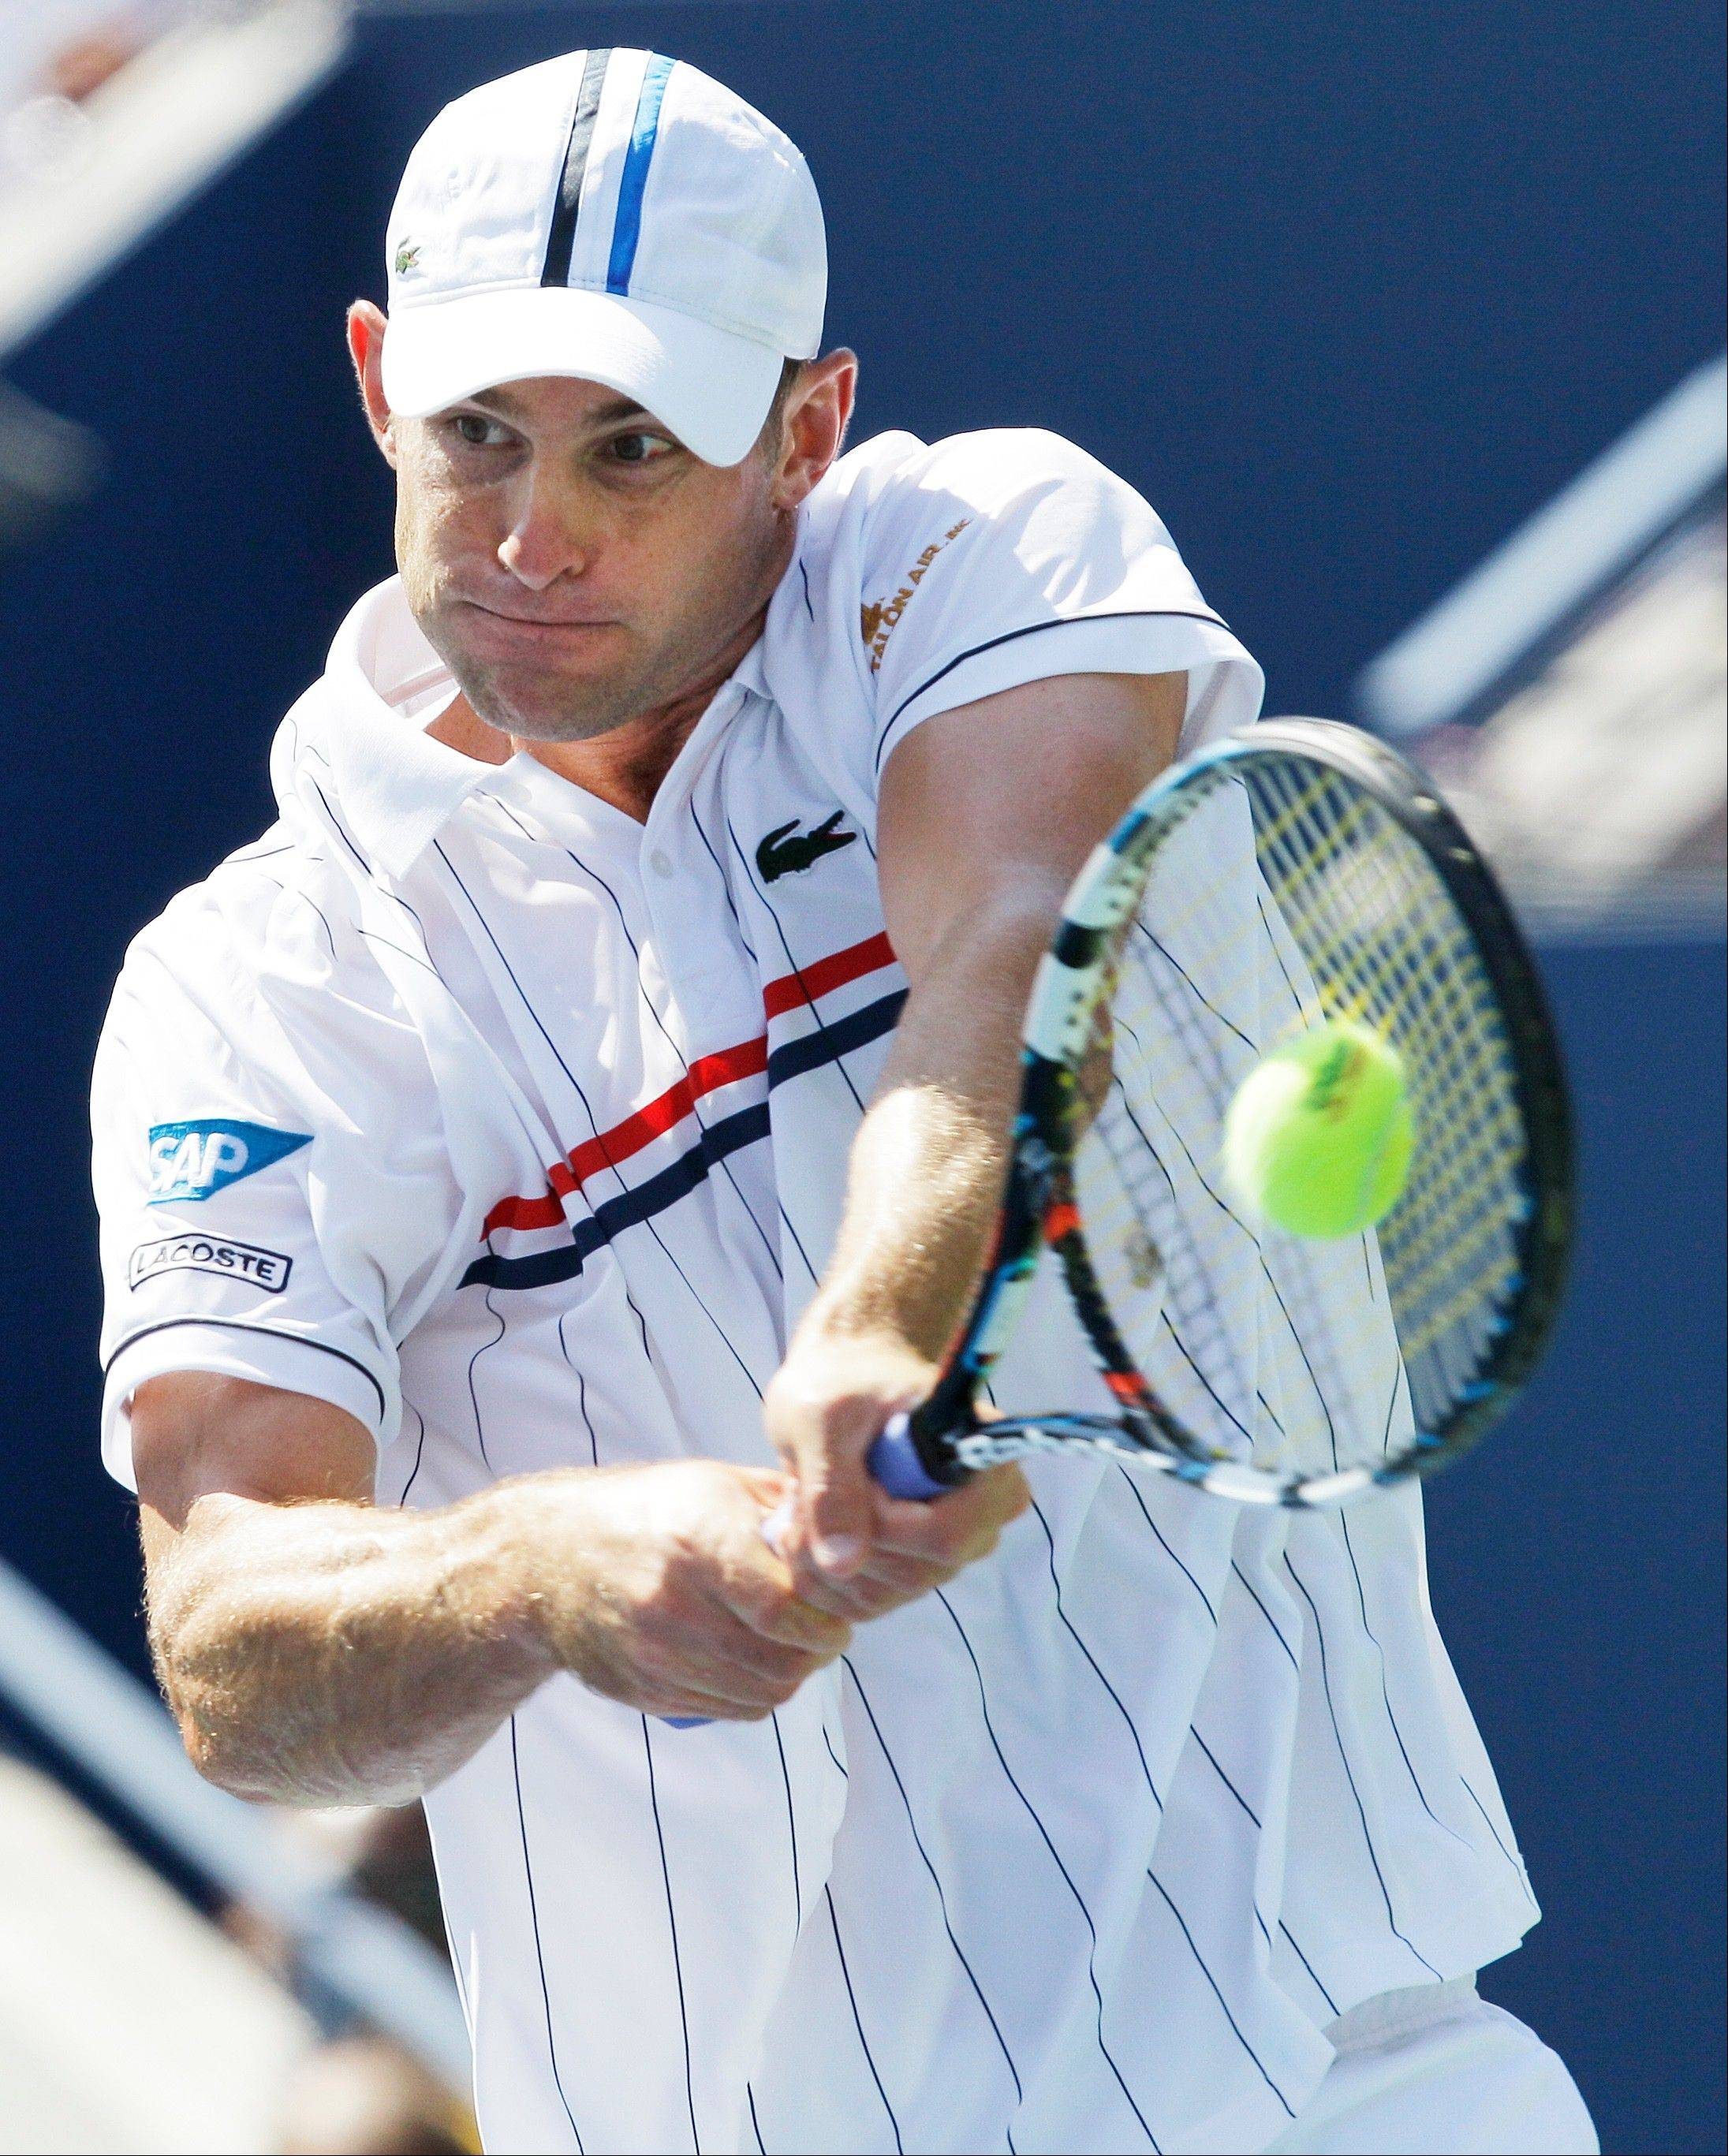 Andy Roddick returns a shot to Rhyne Williams Tuesday during the first round at the 2012 US Open tennis tournament.